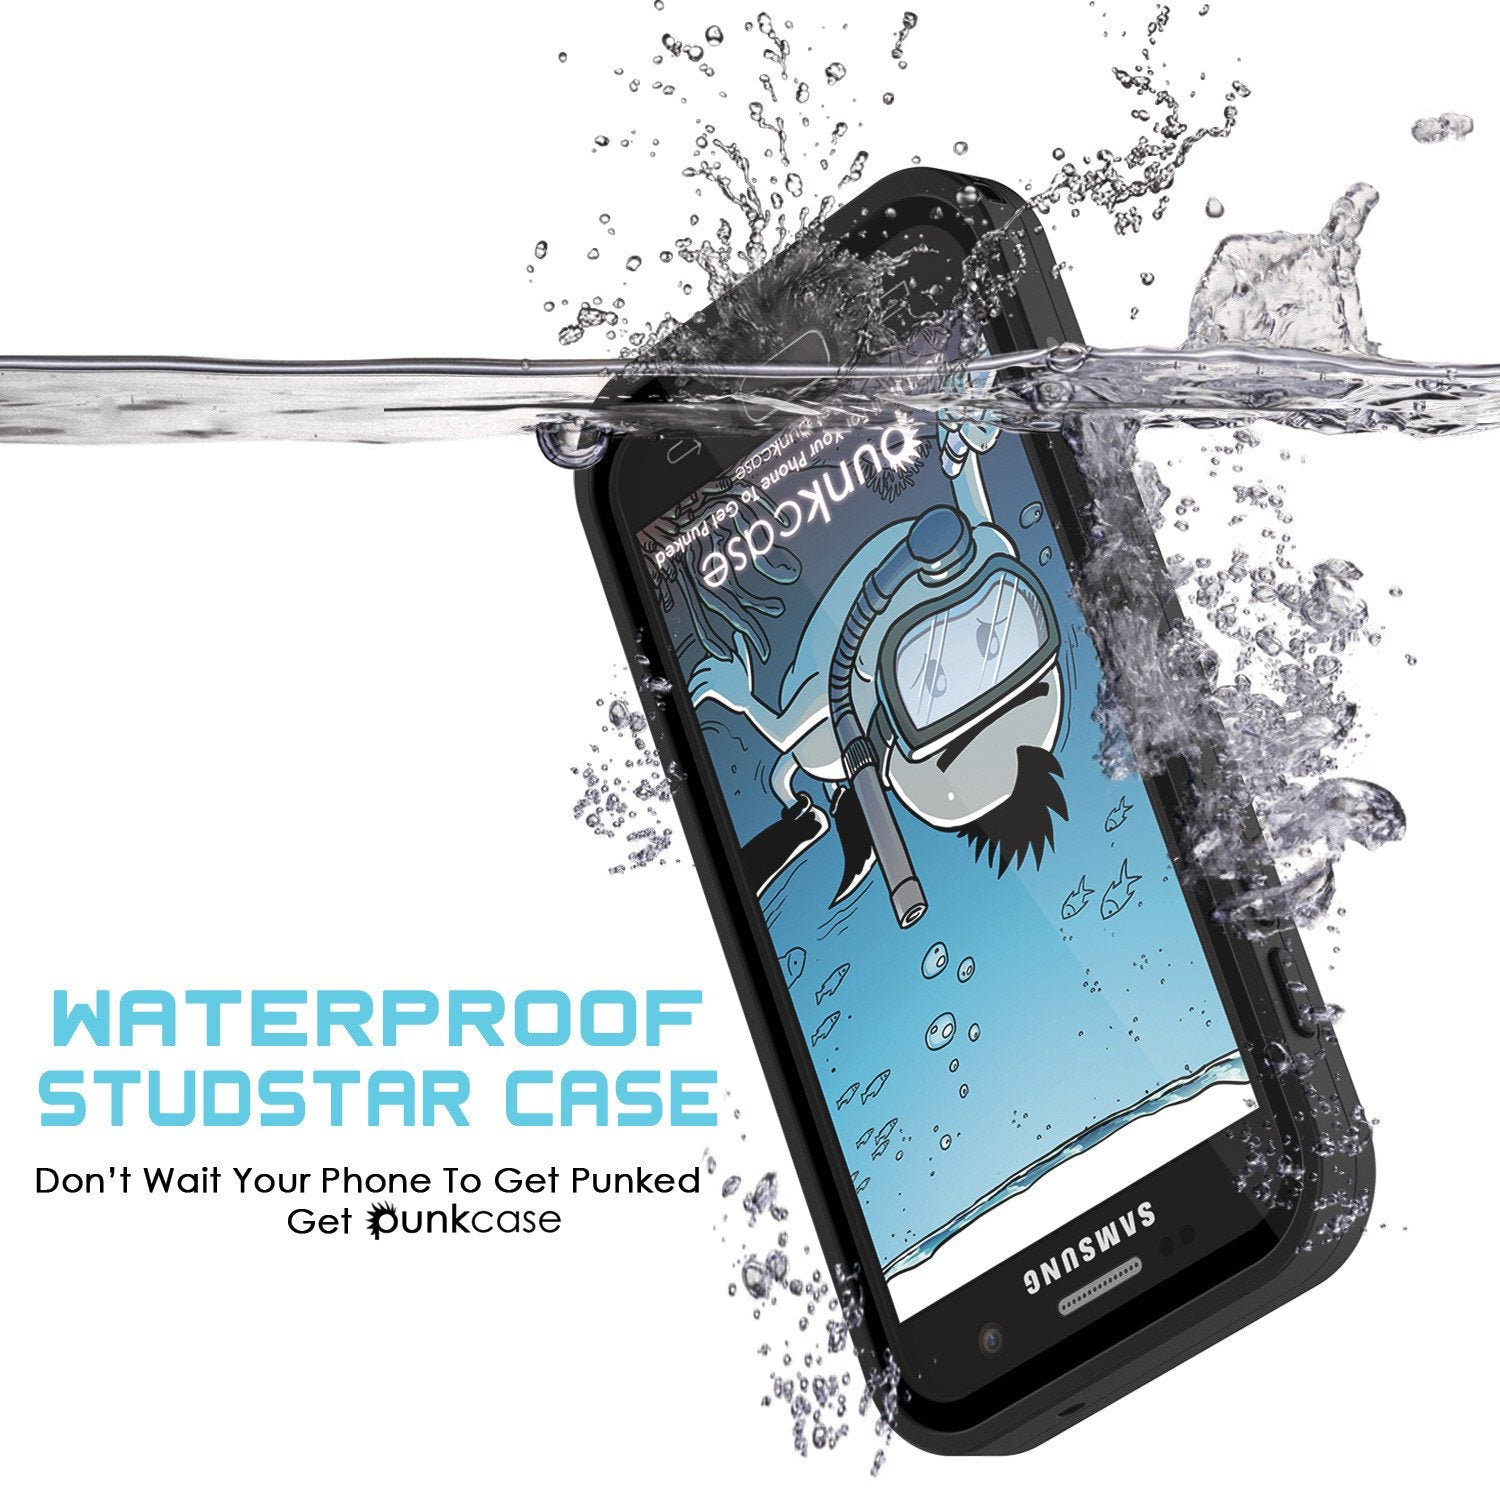 Galaxy S7 Waterproof Case PunkCase StudStar Black Thin 6.6ft Underwater IP68 Shock/Dirt/Snow Proof